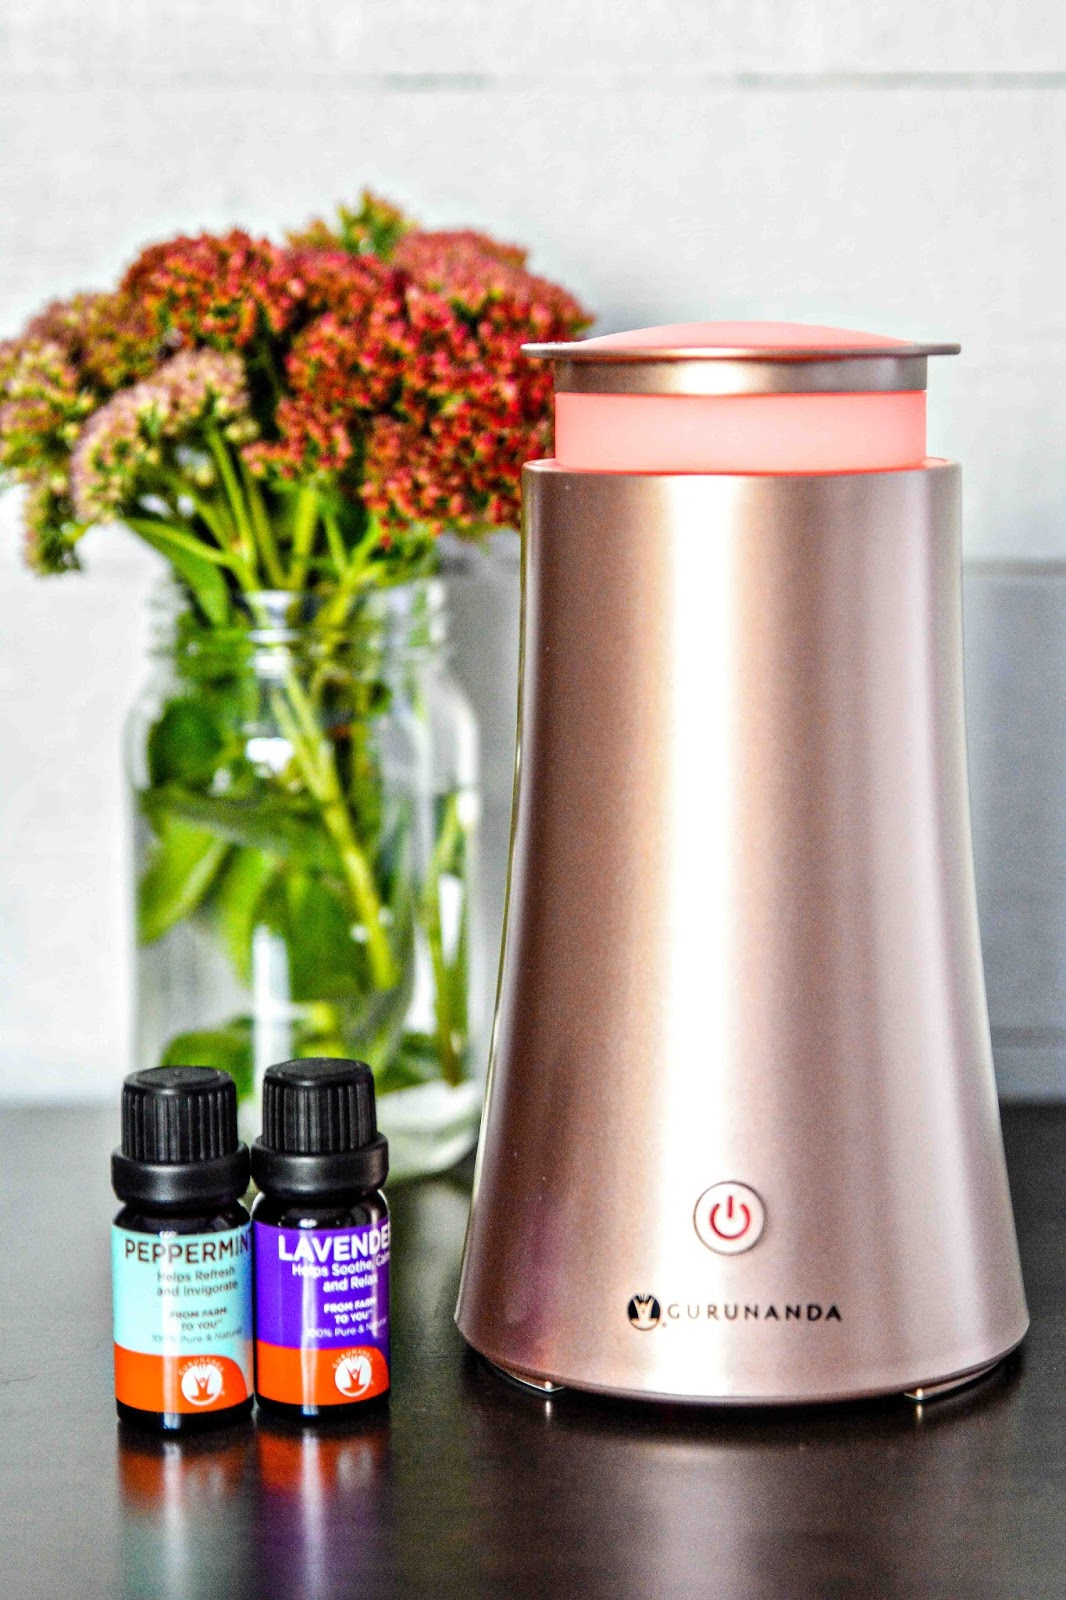 GuruNanda Rose Gold Tower Oil Diffuser